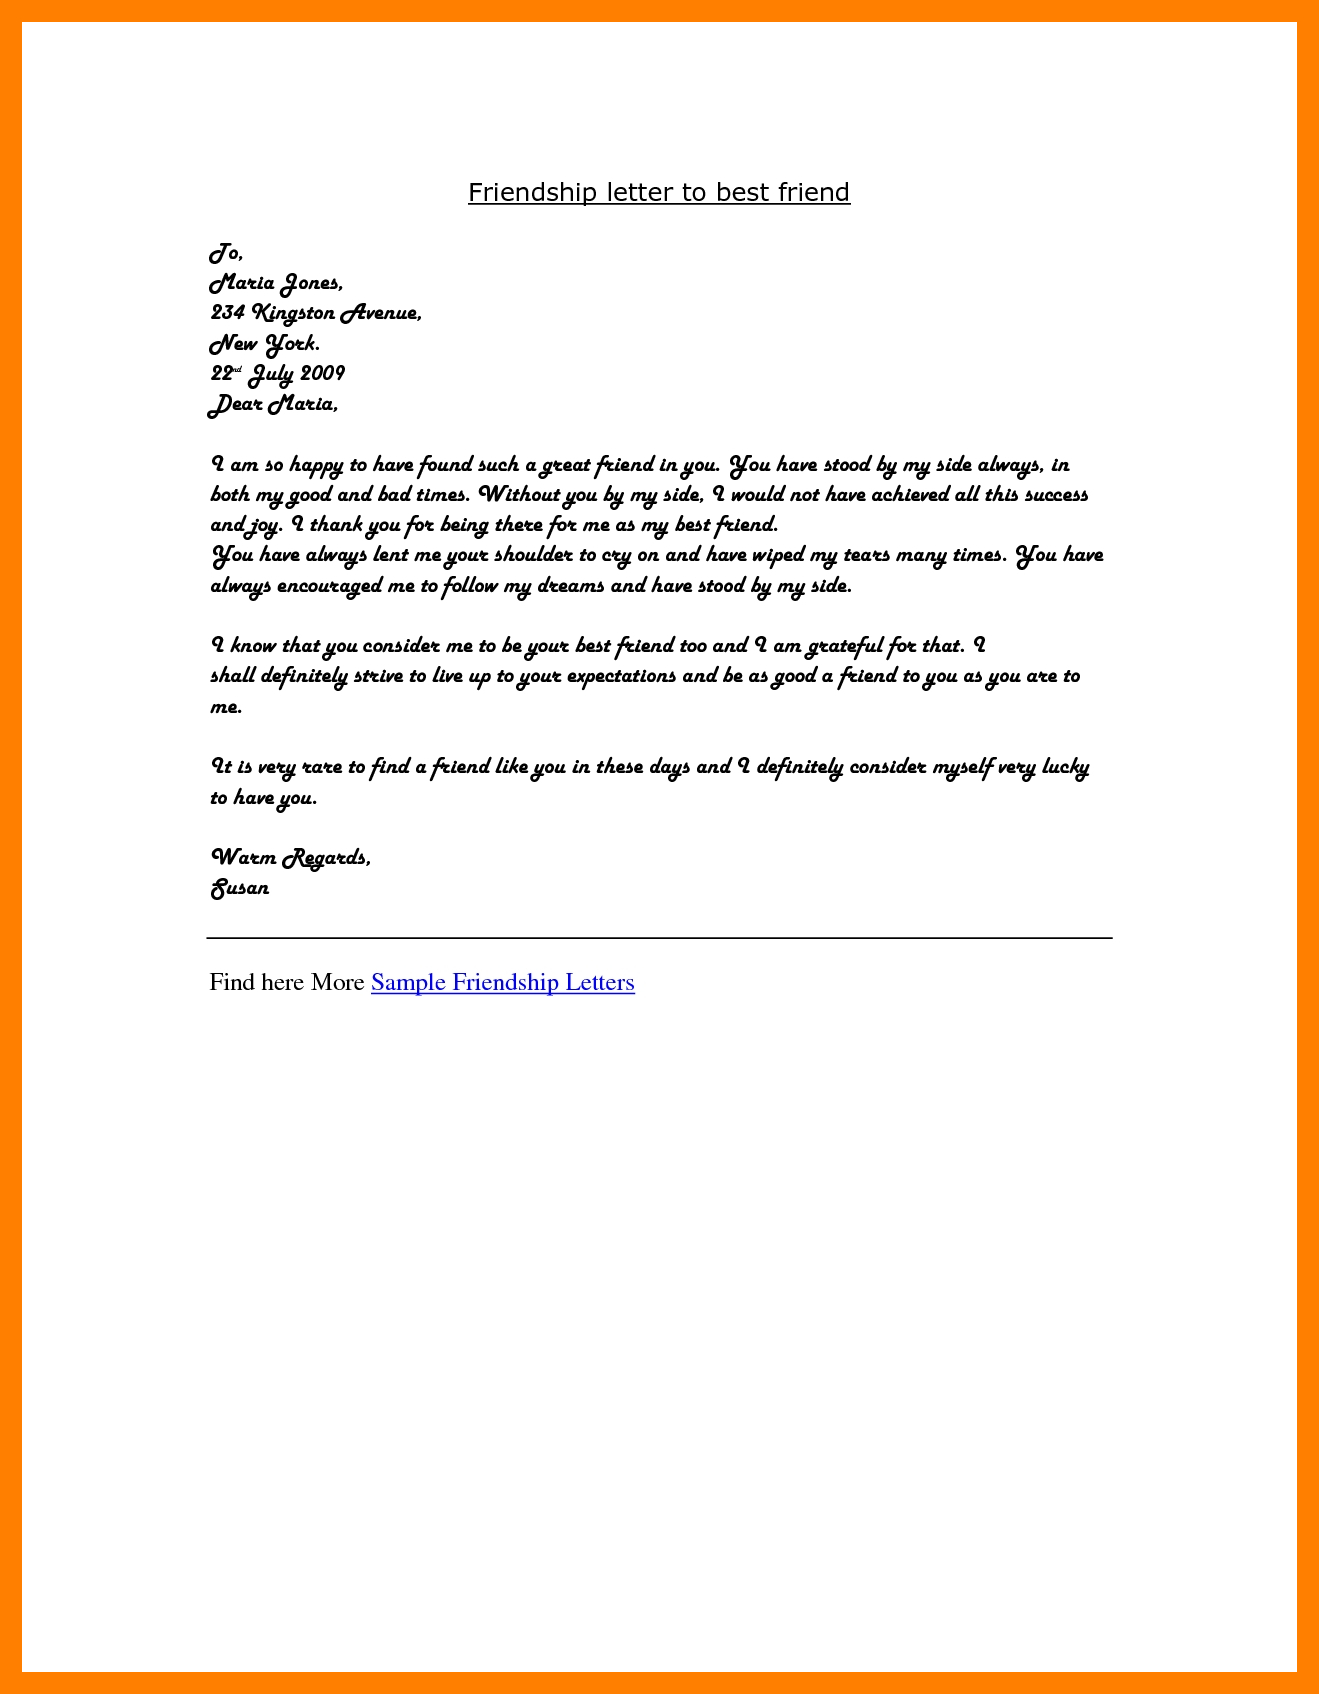 California Offer Letter Template - Awesome How to Write A Re Mendation Letter for A Friend Fo